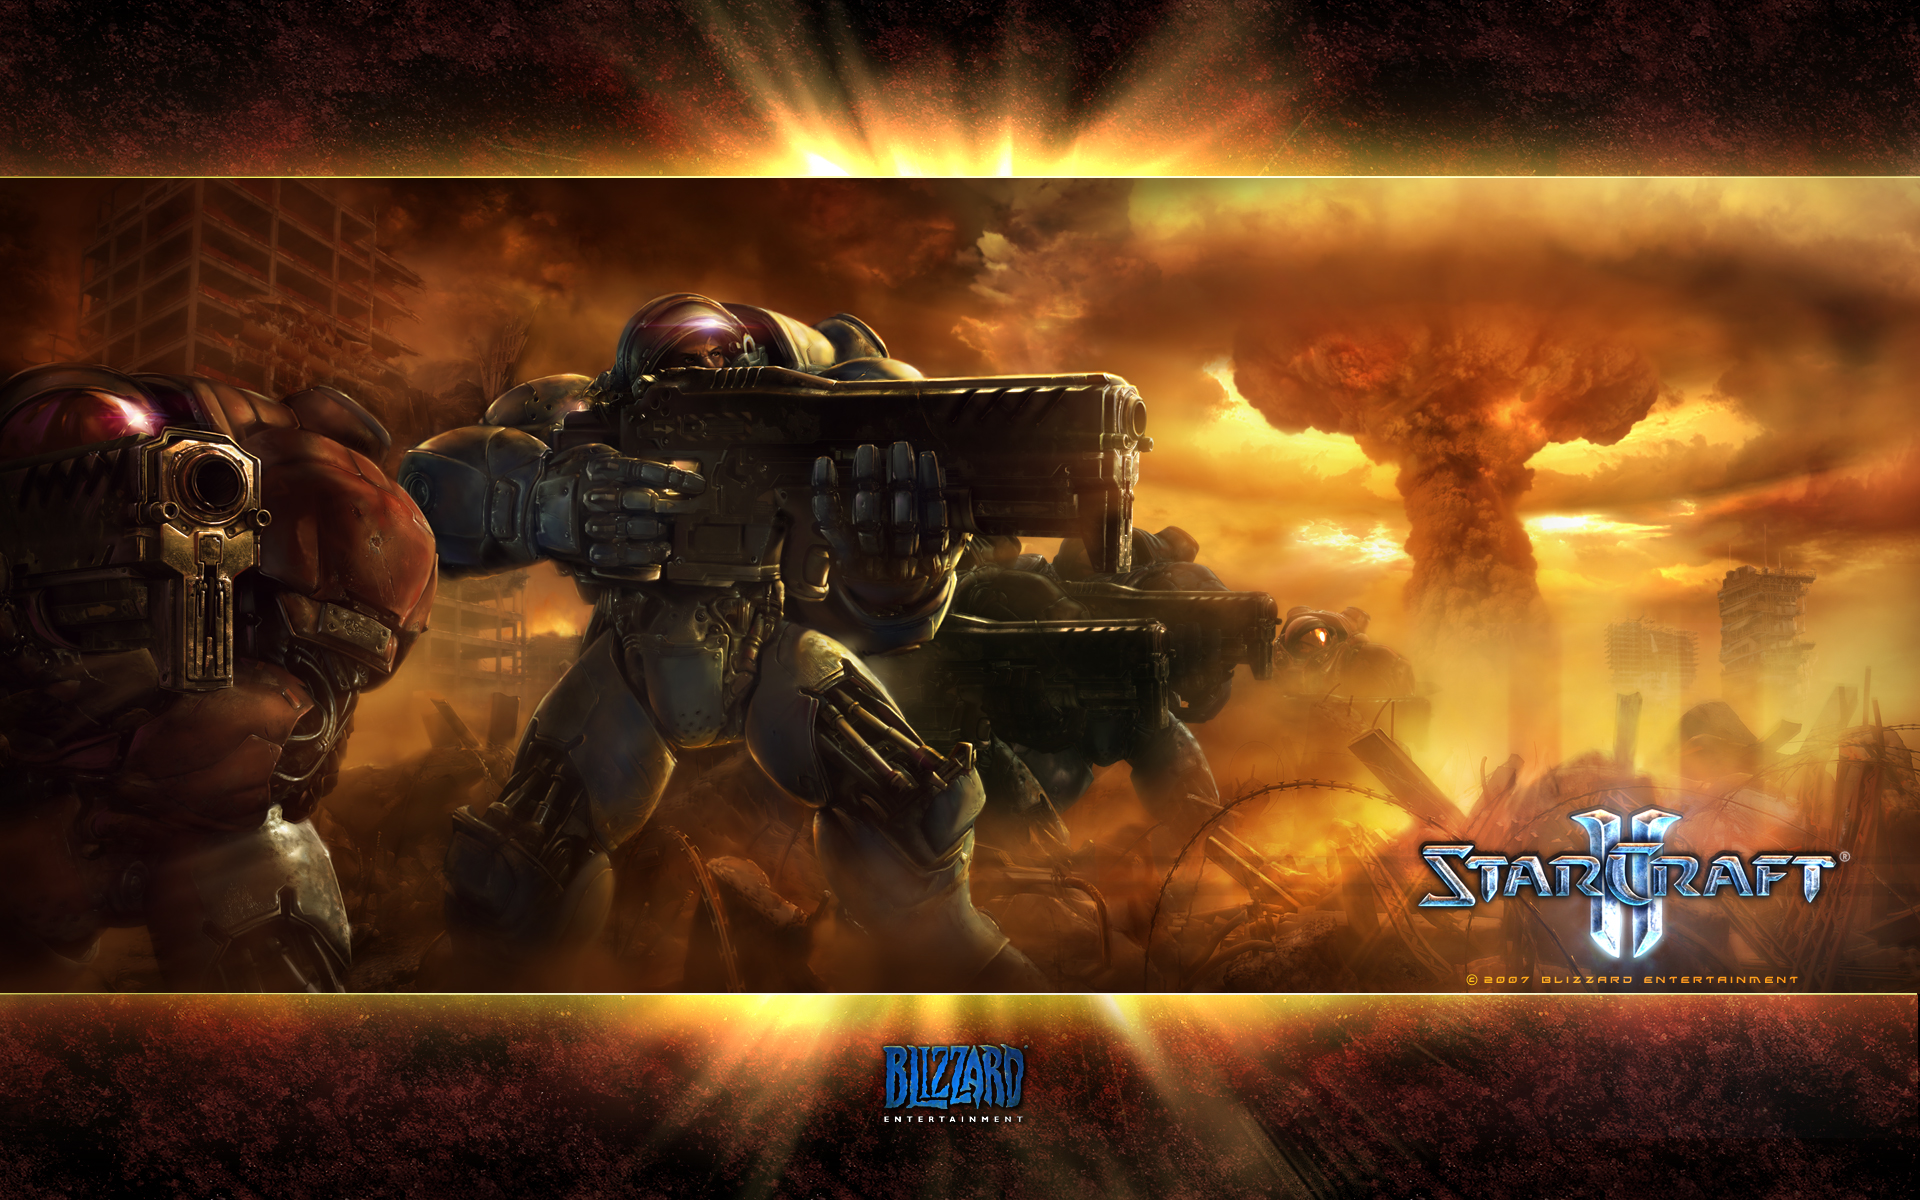 Starcraft 2 Fecha Oficial Anunciada! [OMFG!! Video Preview]